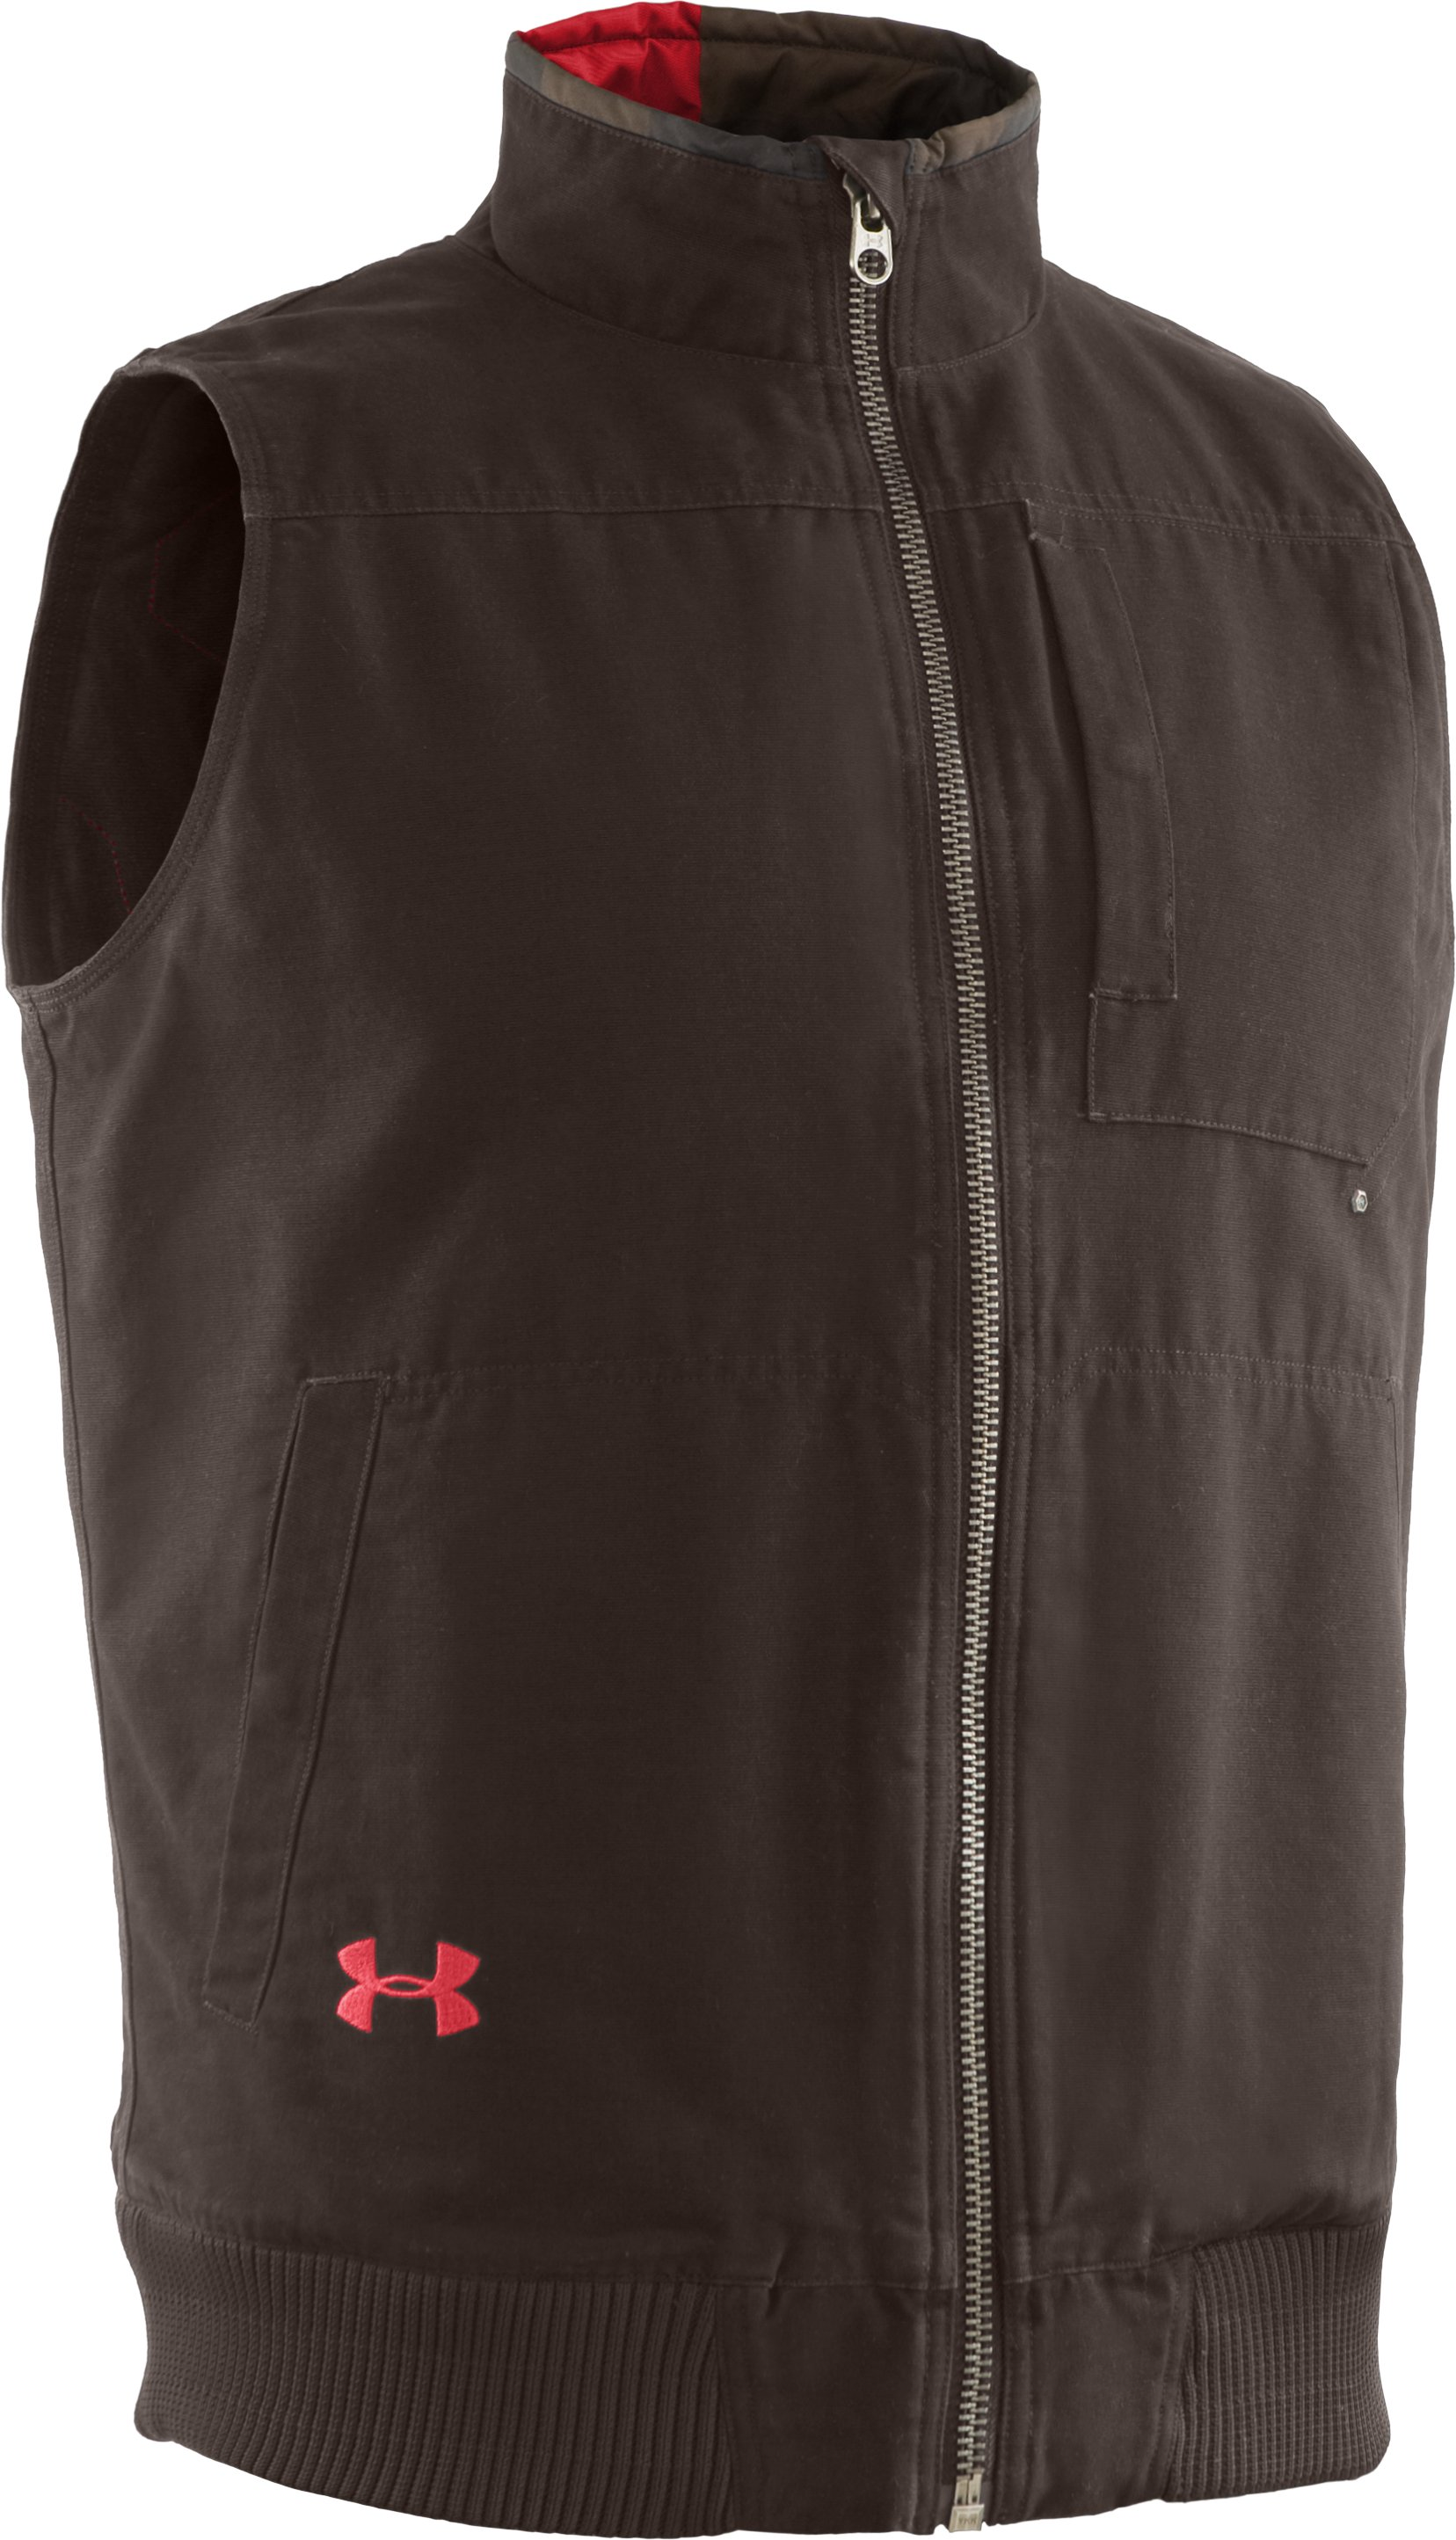 Men's Quilted Vest, Bureau